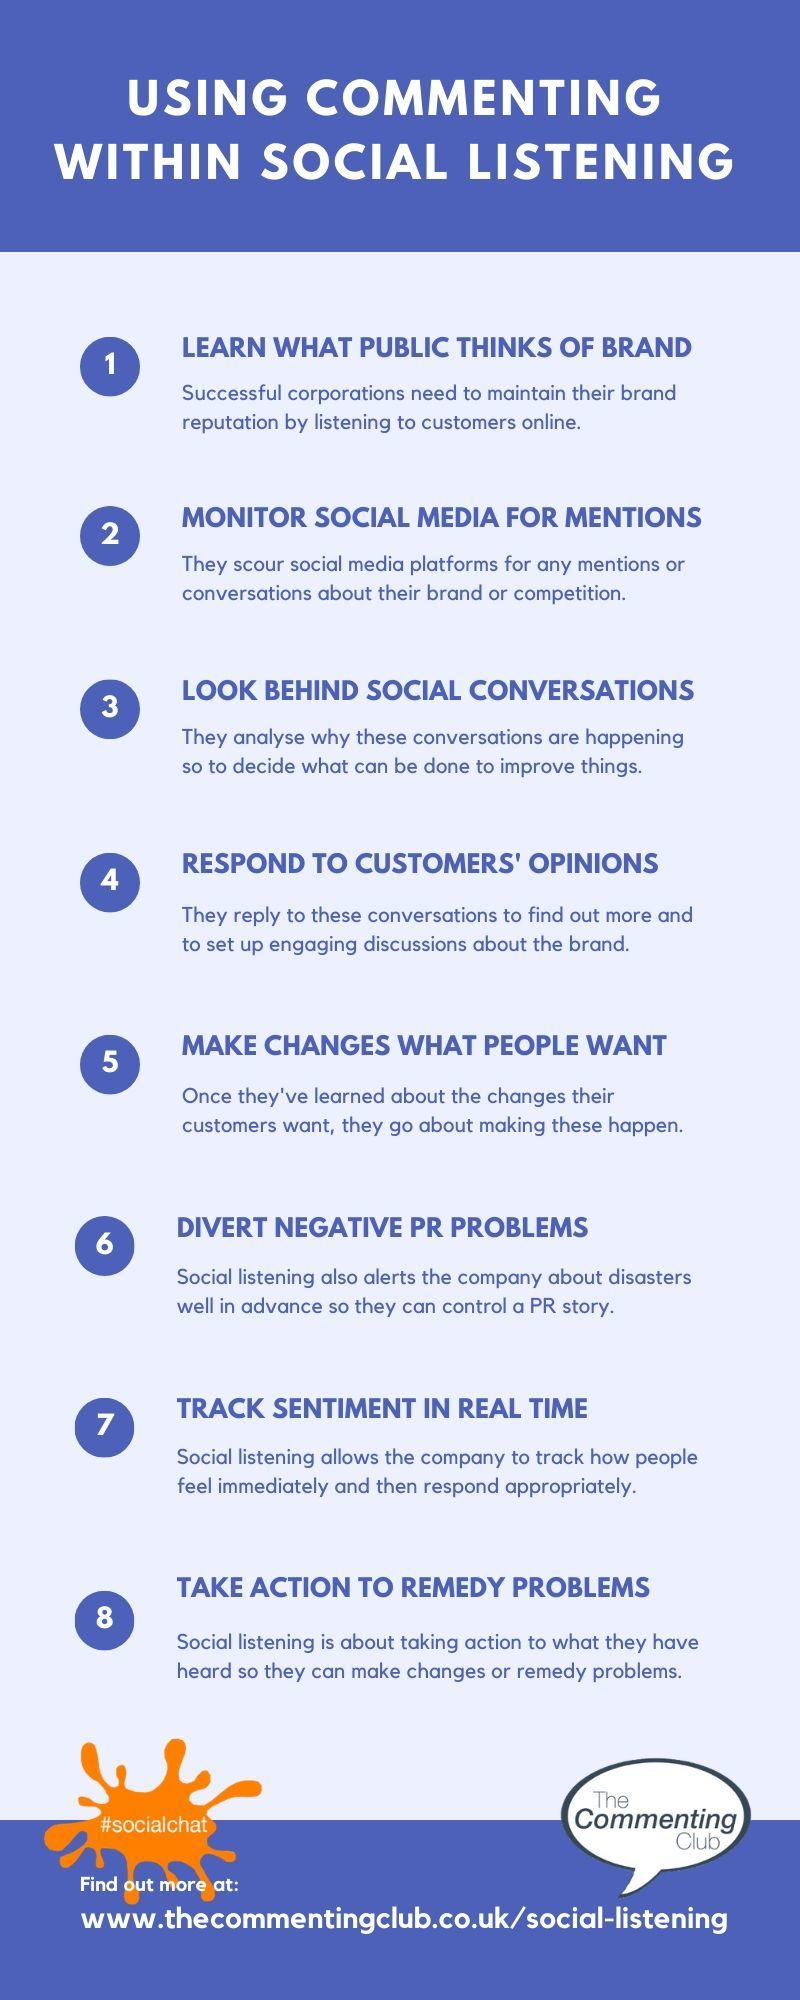 Commenting within social listening